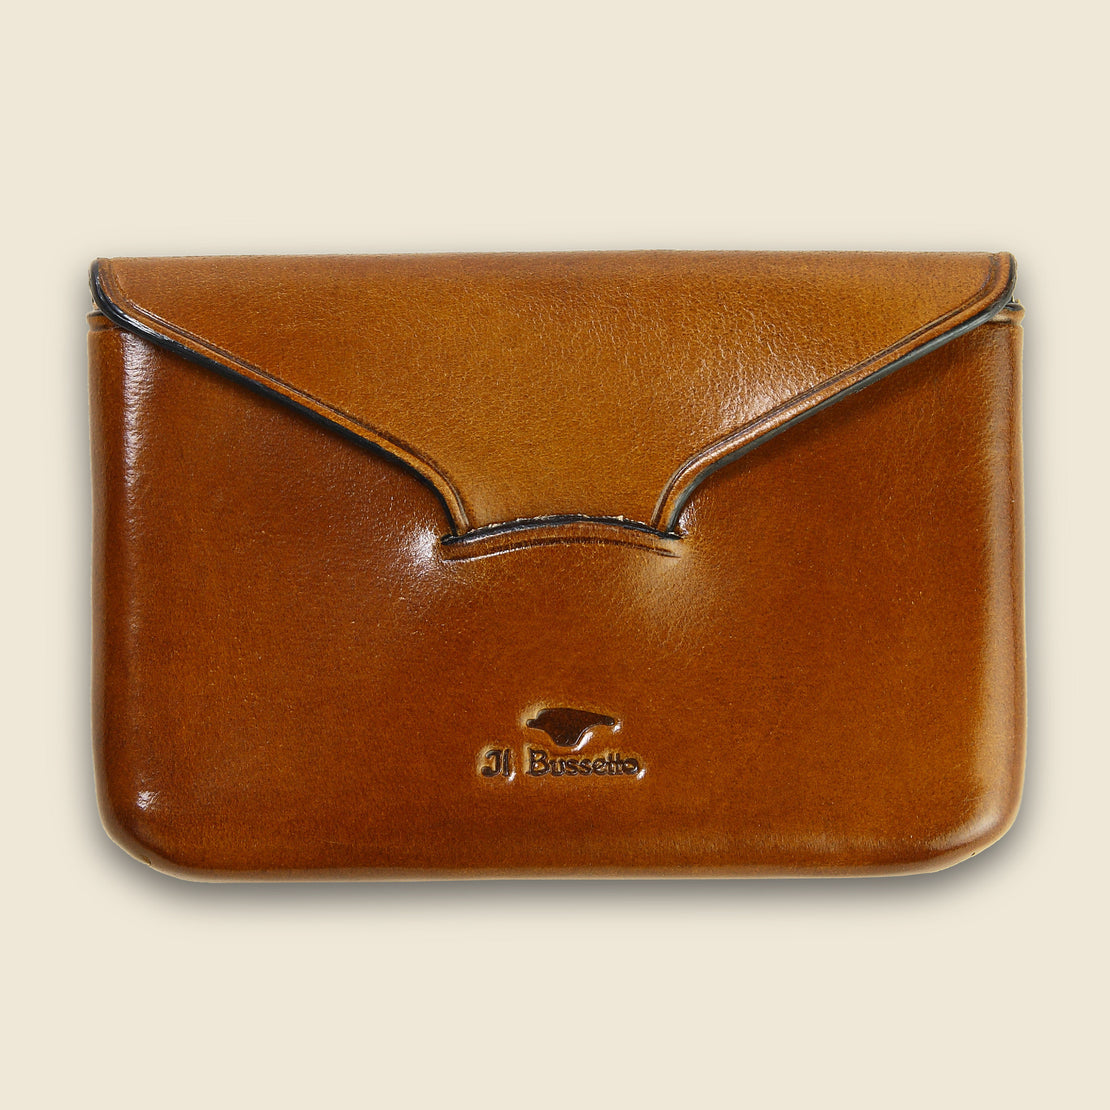 Il Bussetto Business Card Holder - Light Brown